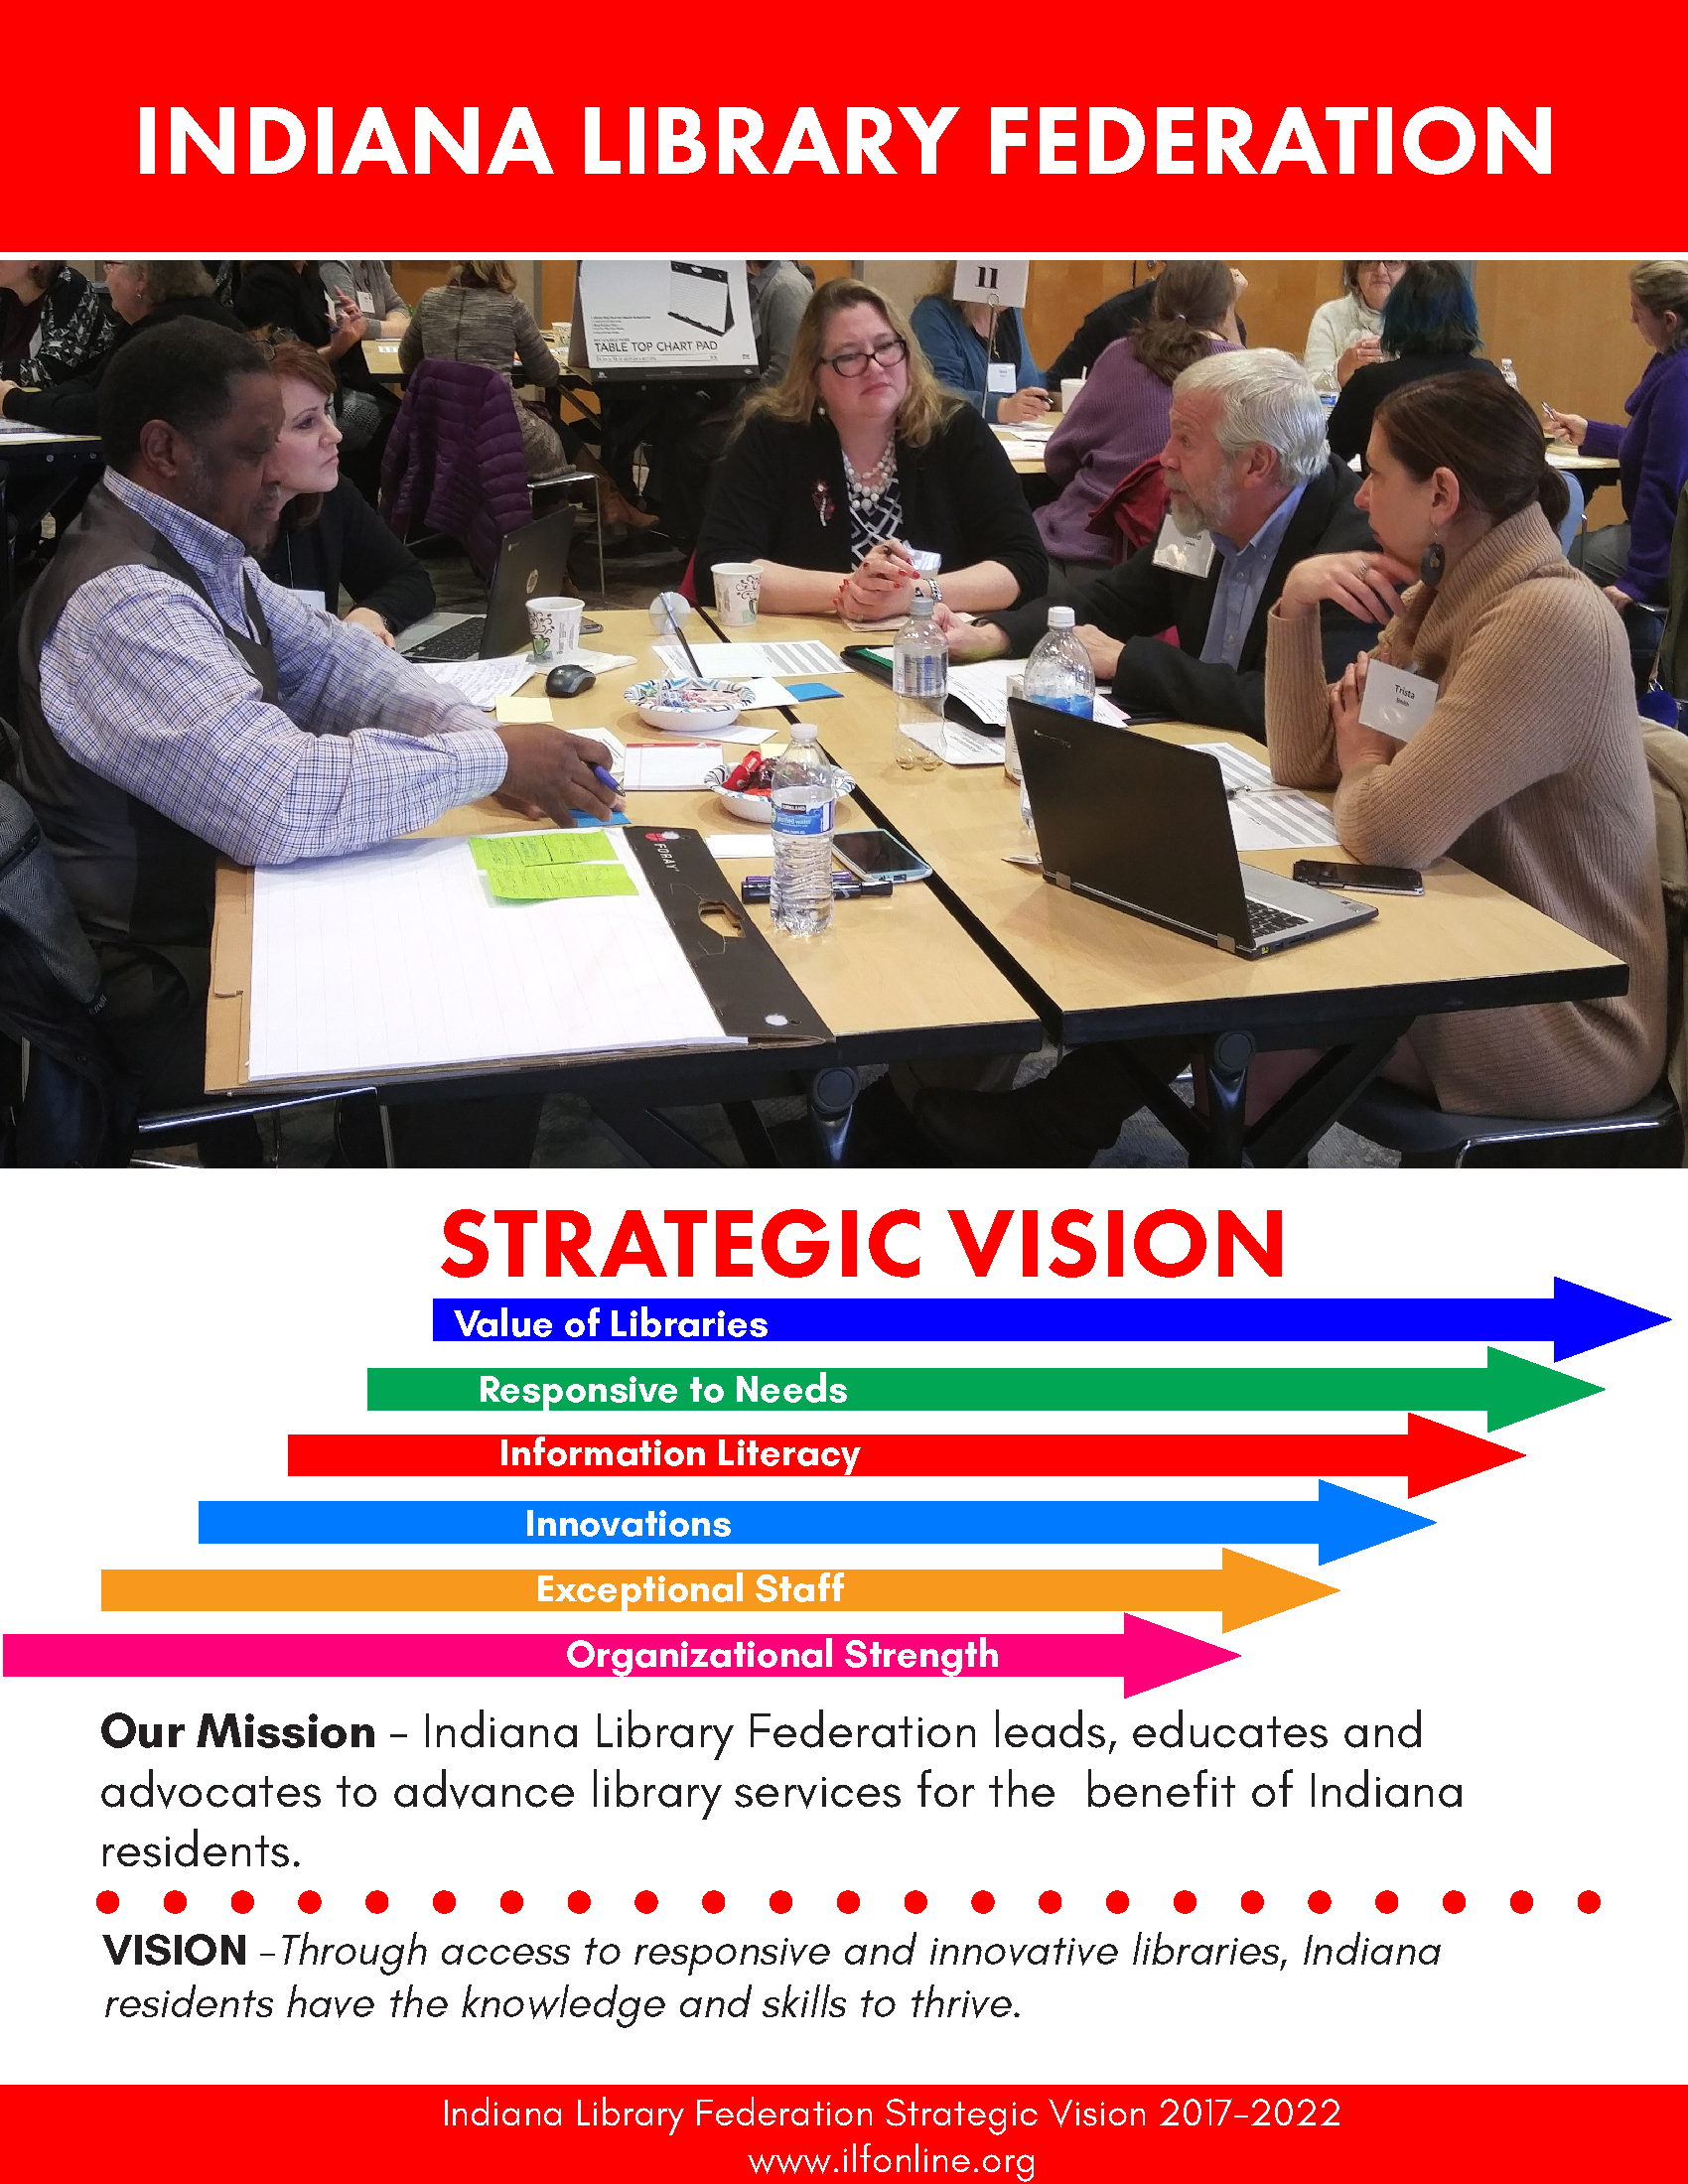 Front cover of ILF Strategic Vision document